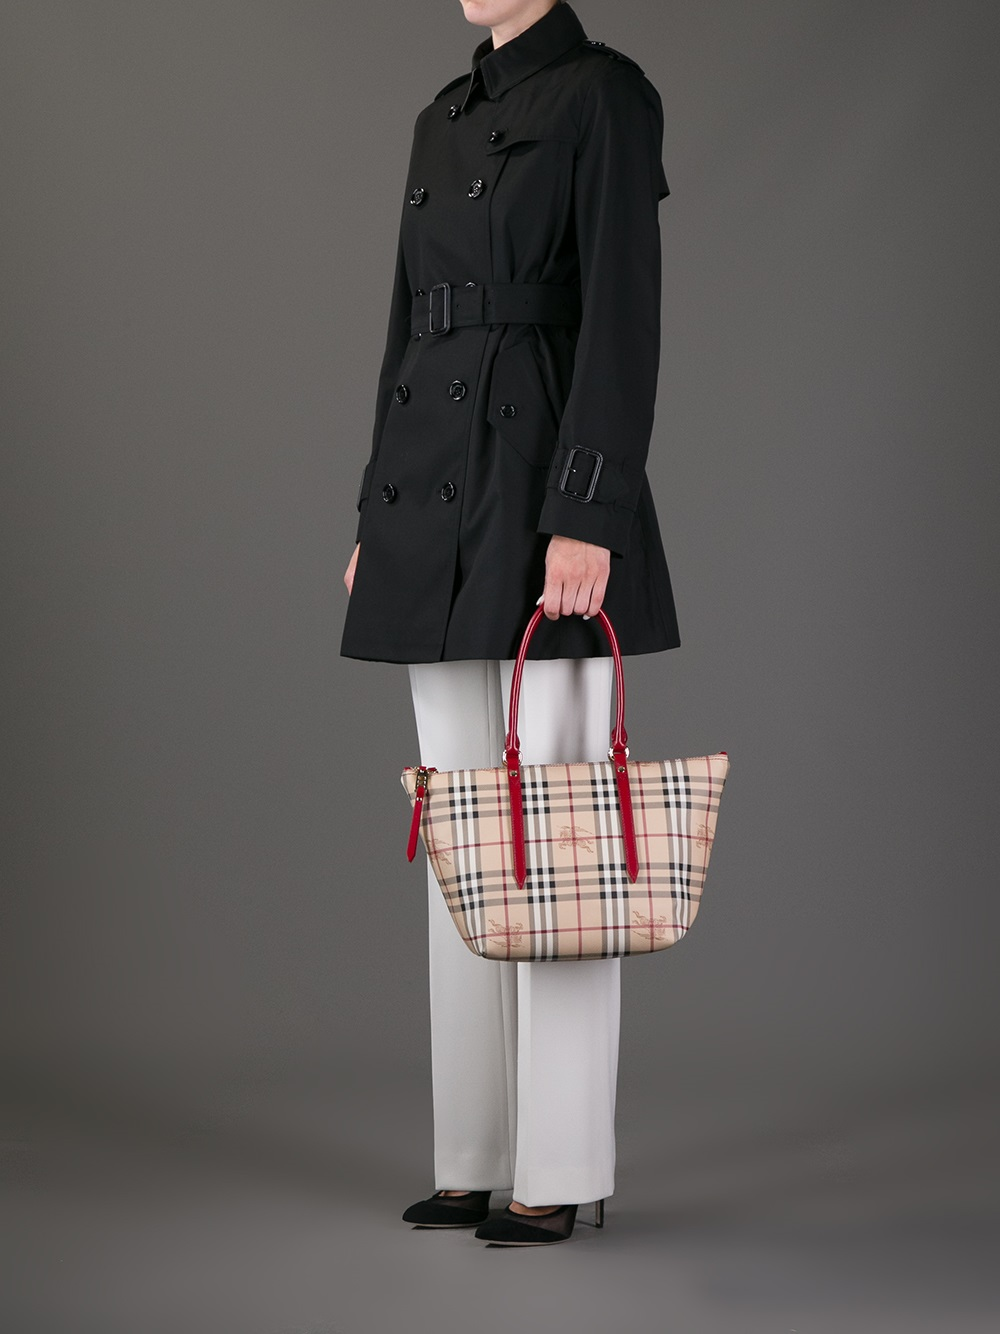 Burberry Checked Tote Bag in Beige (Natural)